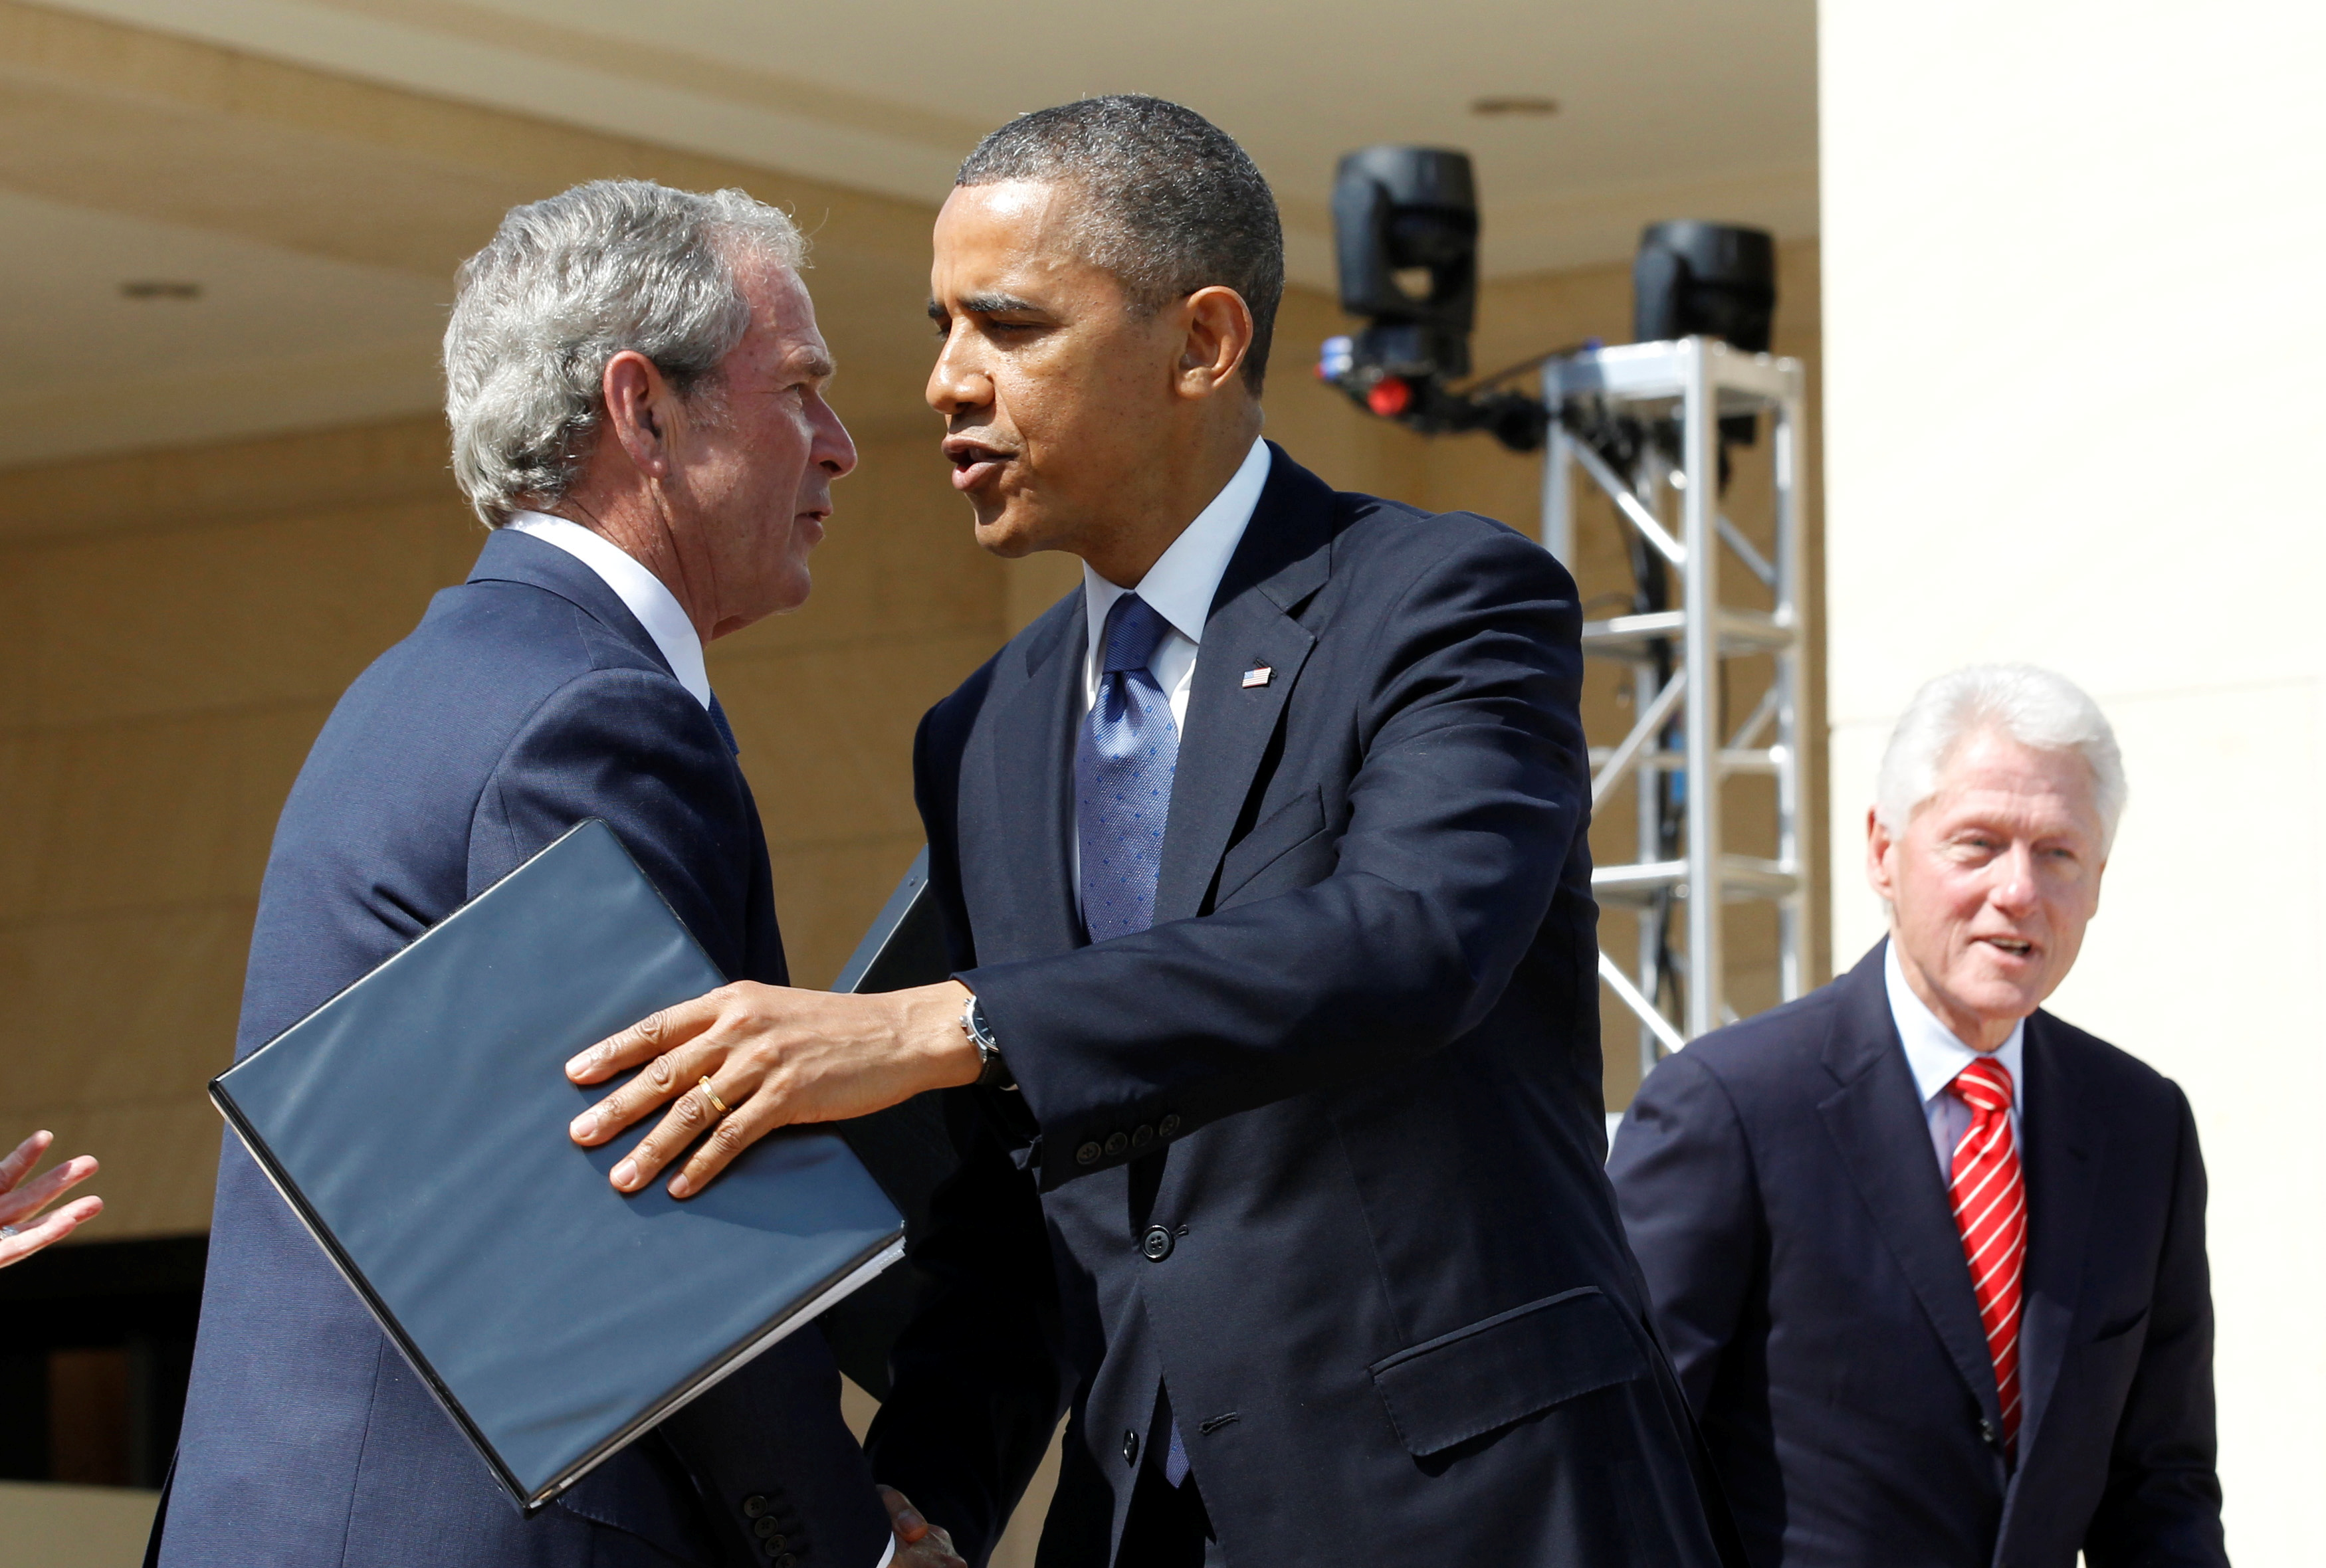 U.S. President Barack Obama embraces former President George W. Bush following remarks at the dedication ceremony of the George W. Bush Presidential Center in Dallas, April 25, 2013. Former president Bill Clinton is pictured at right. REUTERS/Jason Reed/File Photo